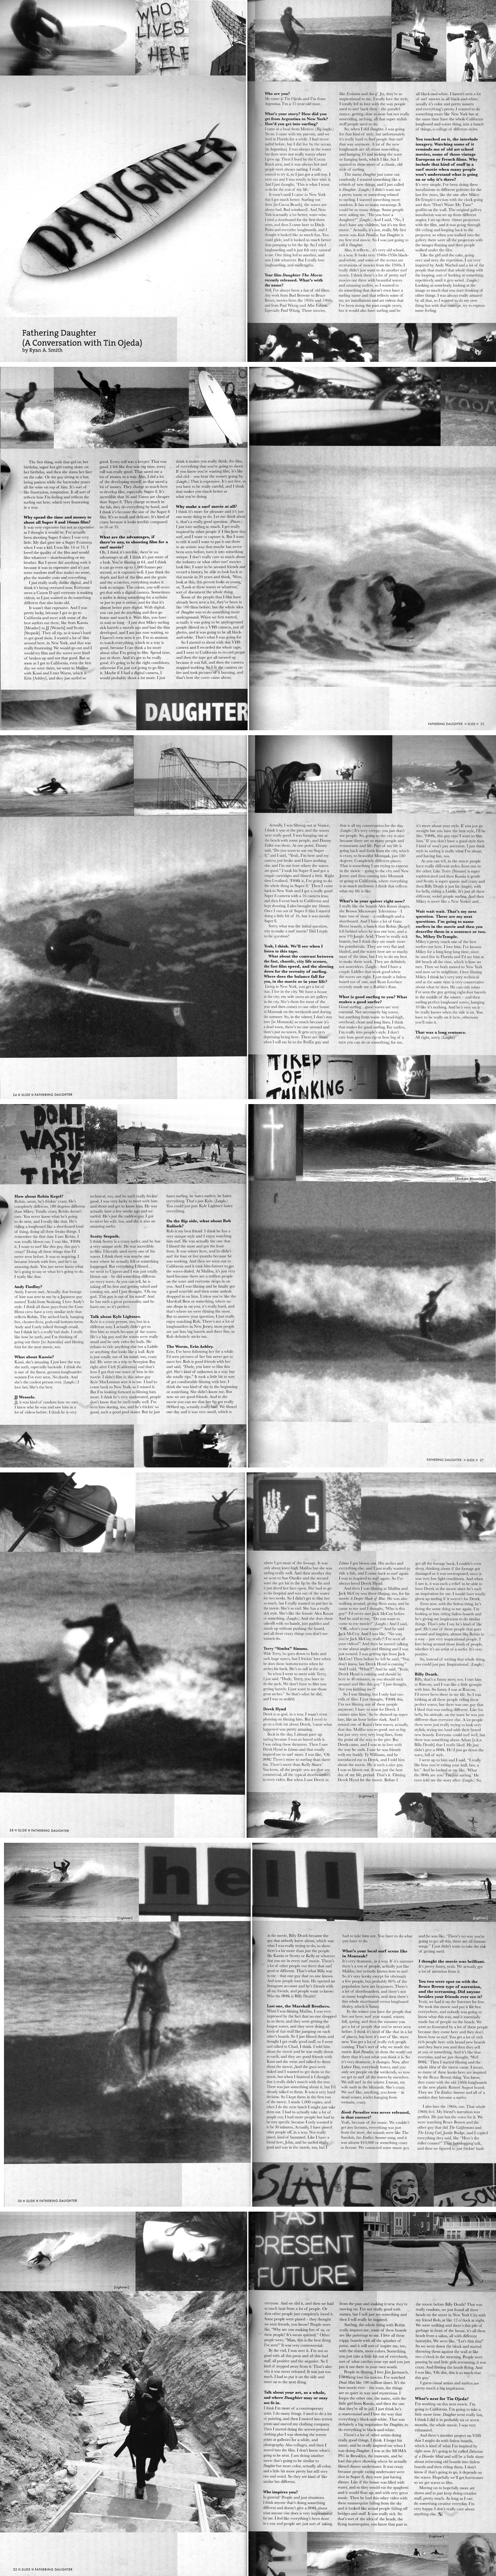 Slide Magazine (NZL) • Issue #47 • Daughter Film Editorial.